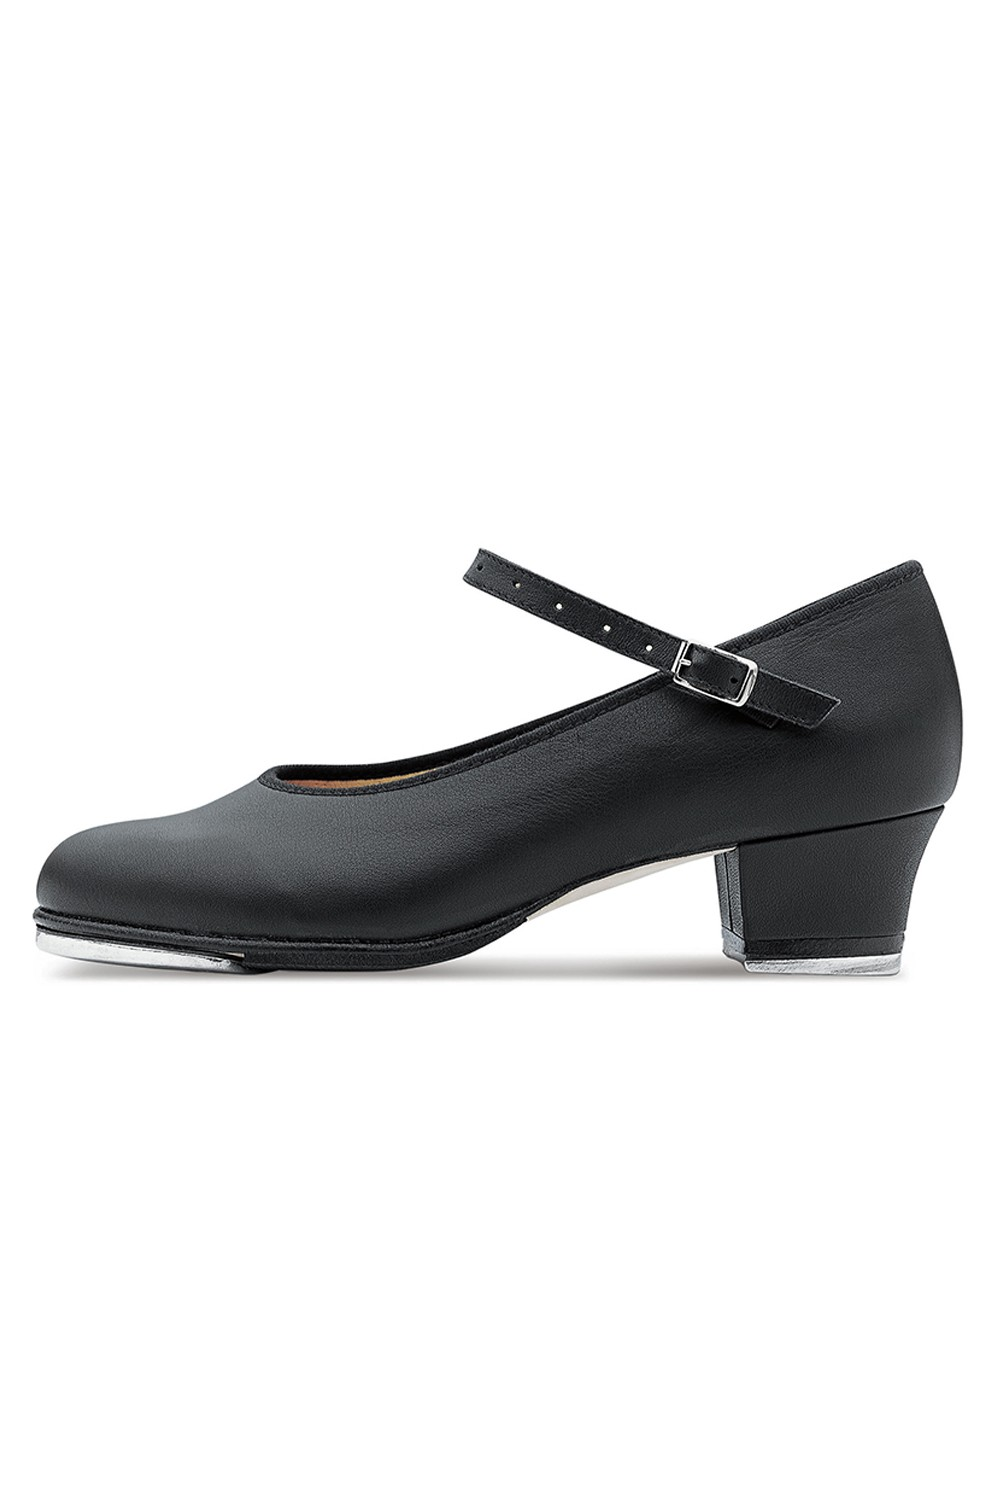 Show-tapper Women's Tap Shoes